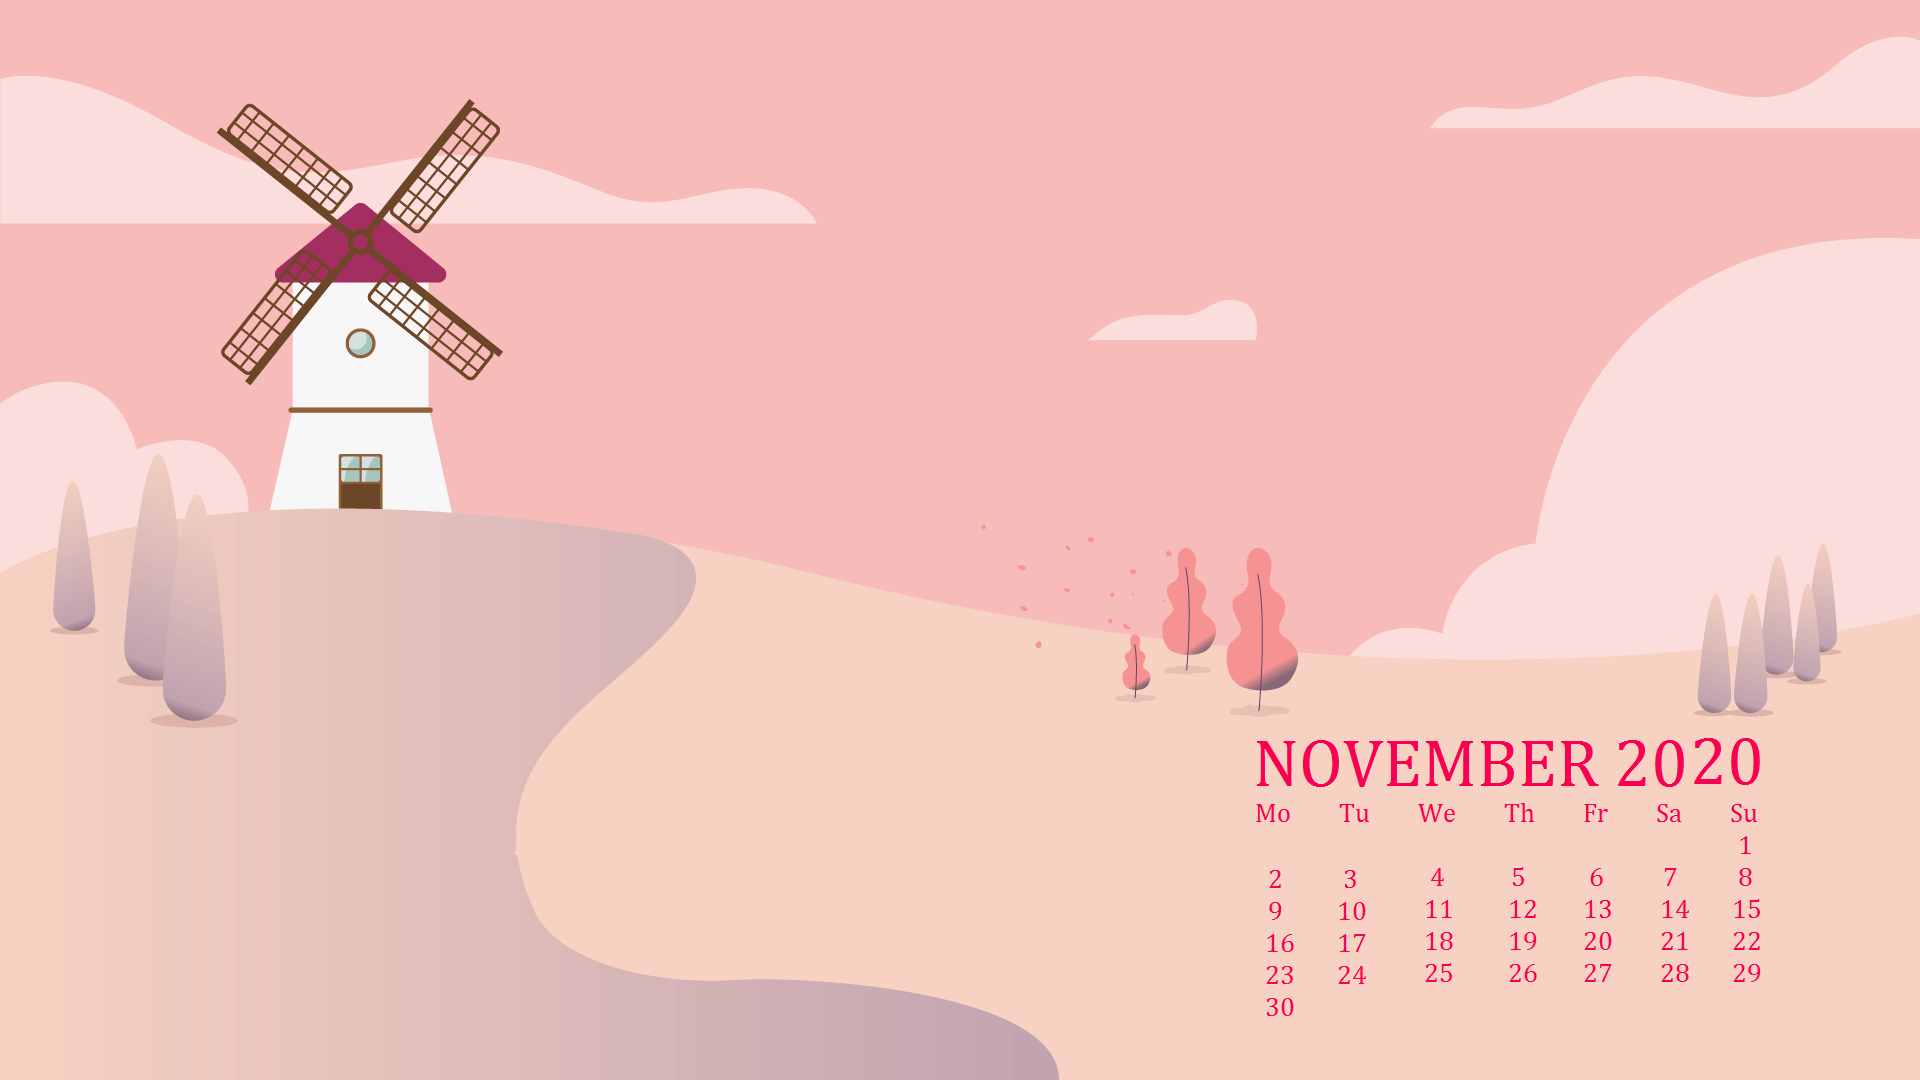 November 2020 Desktop Calendar Wallpapers in 2020